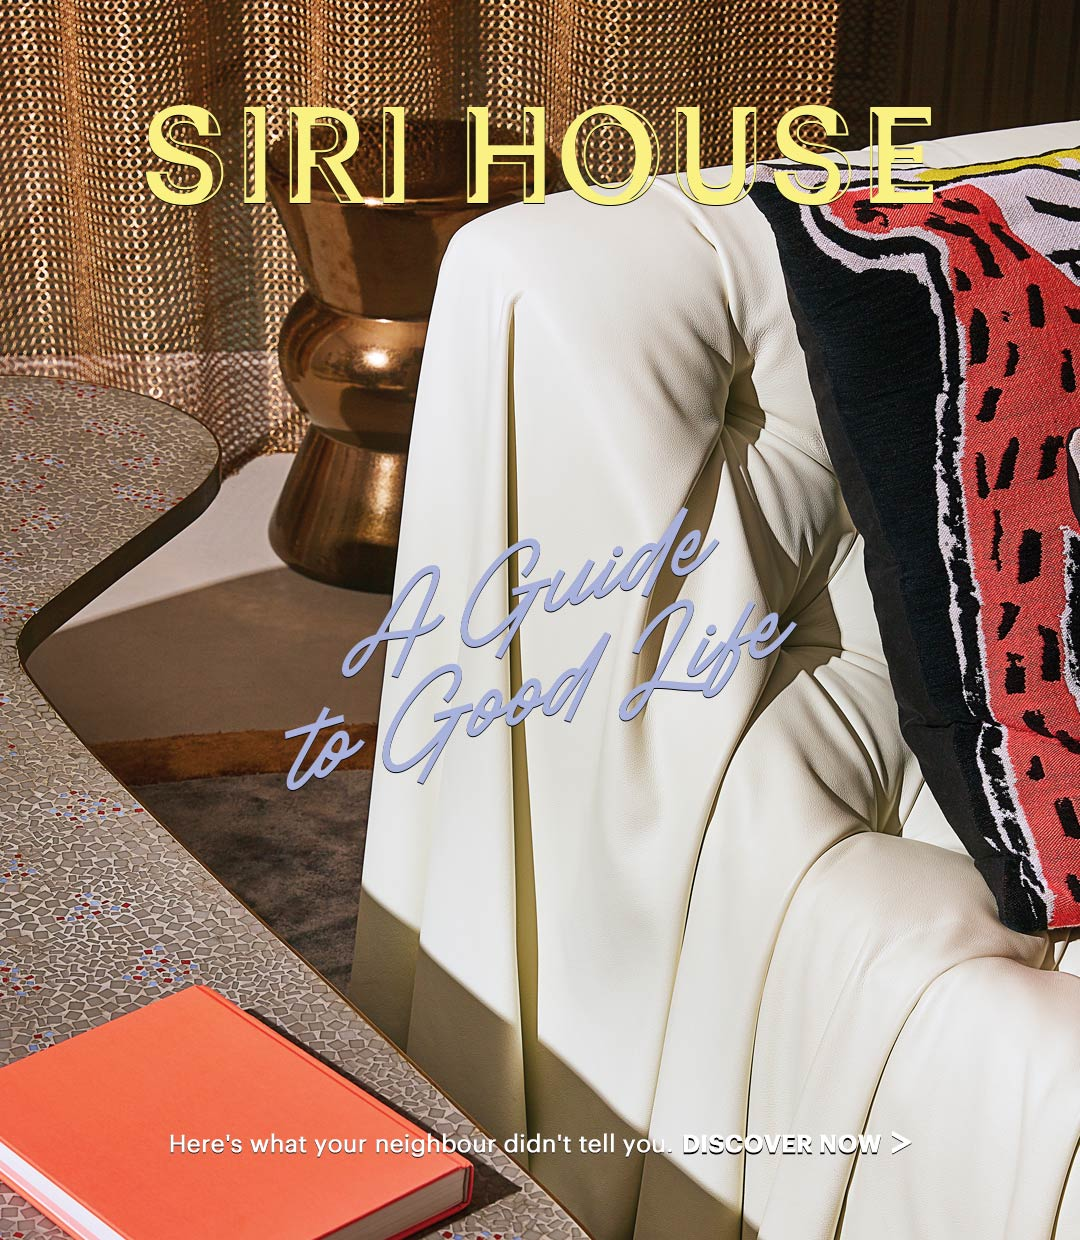 sirihouse-A Guide To Good Life